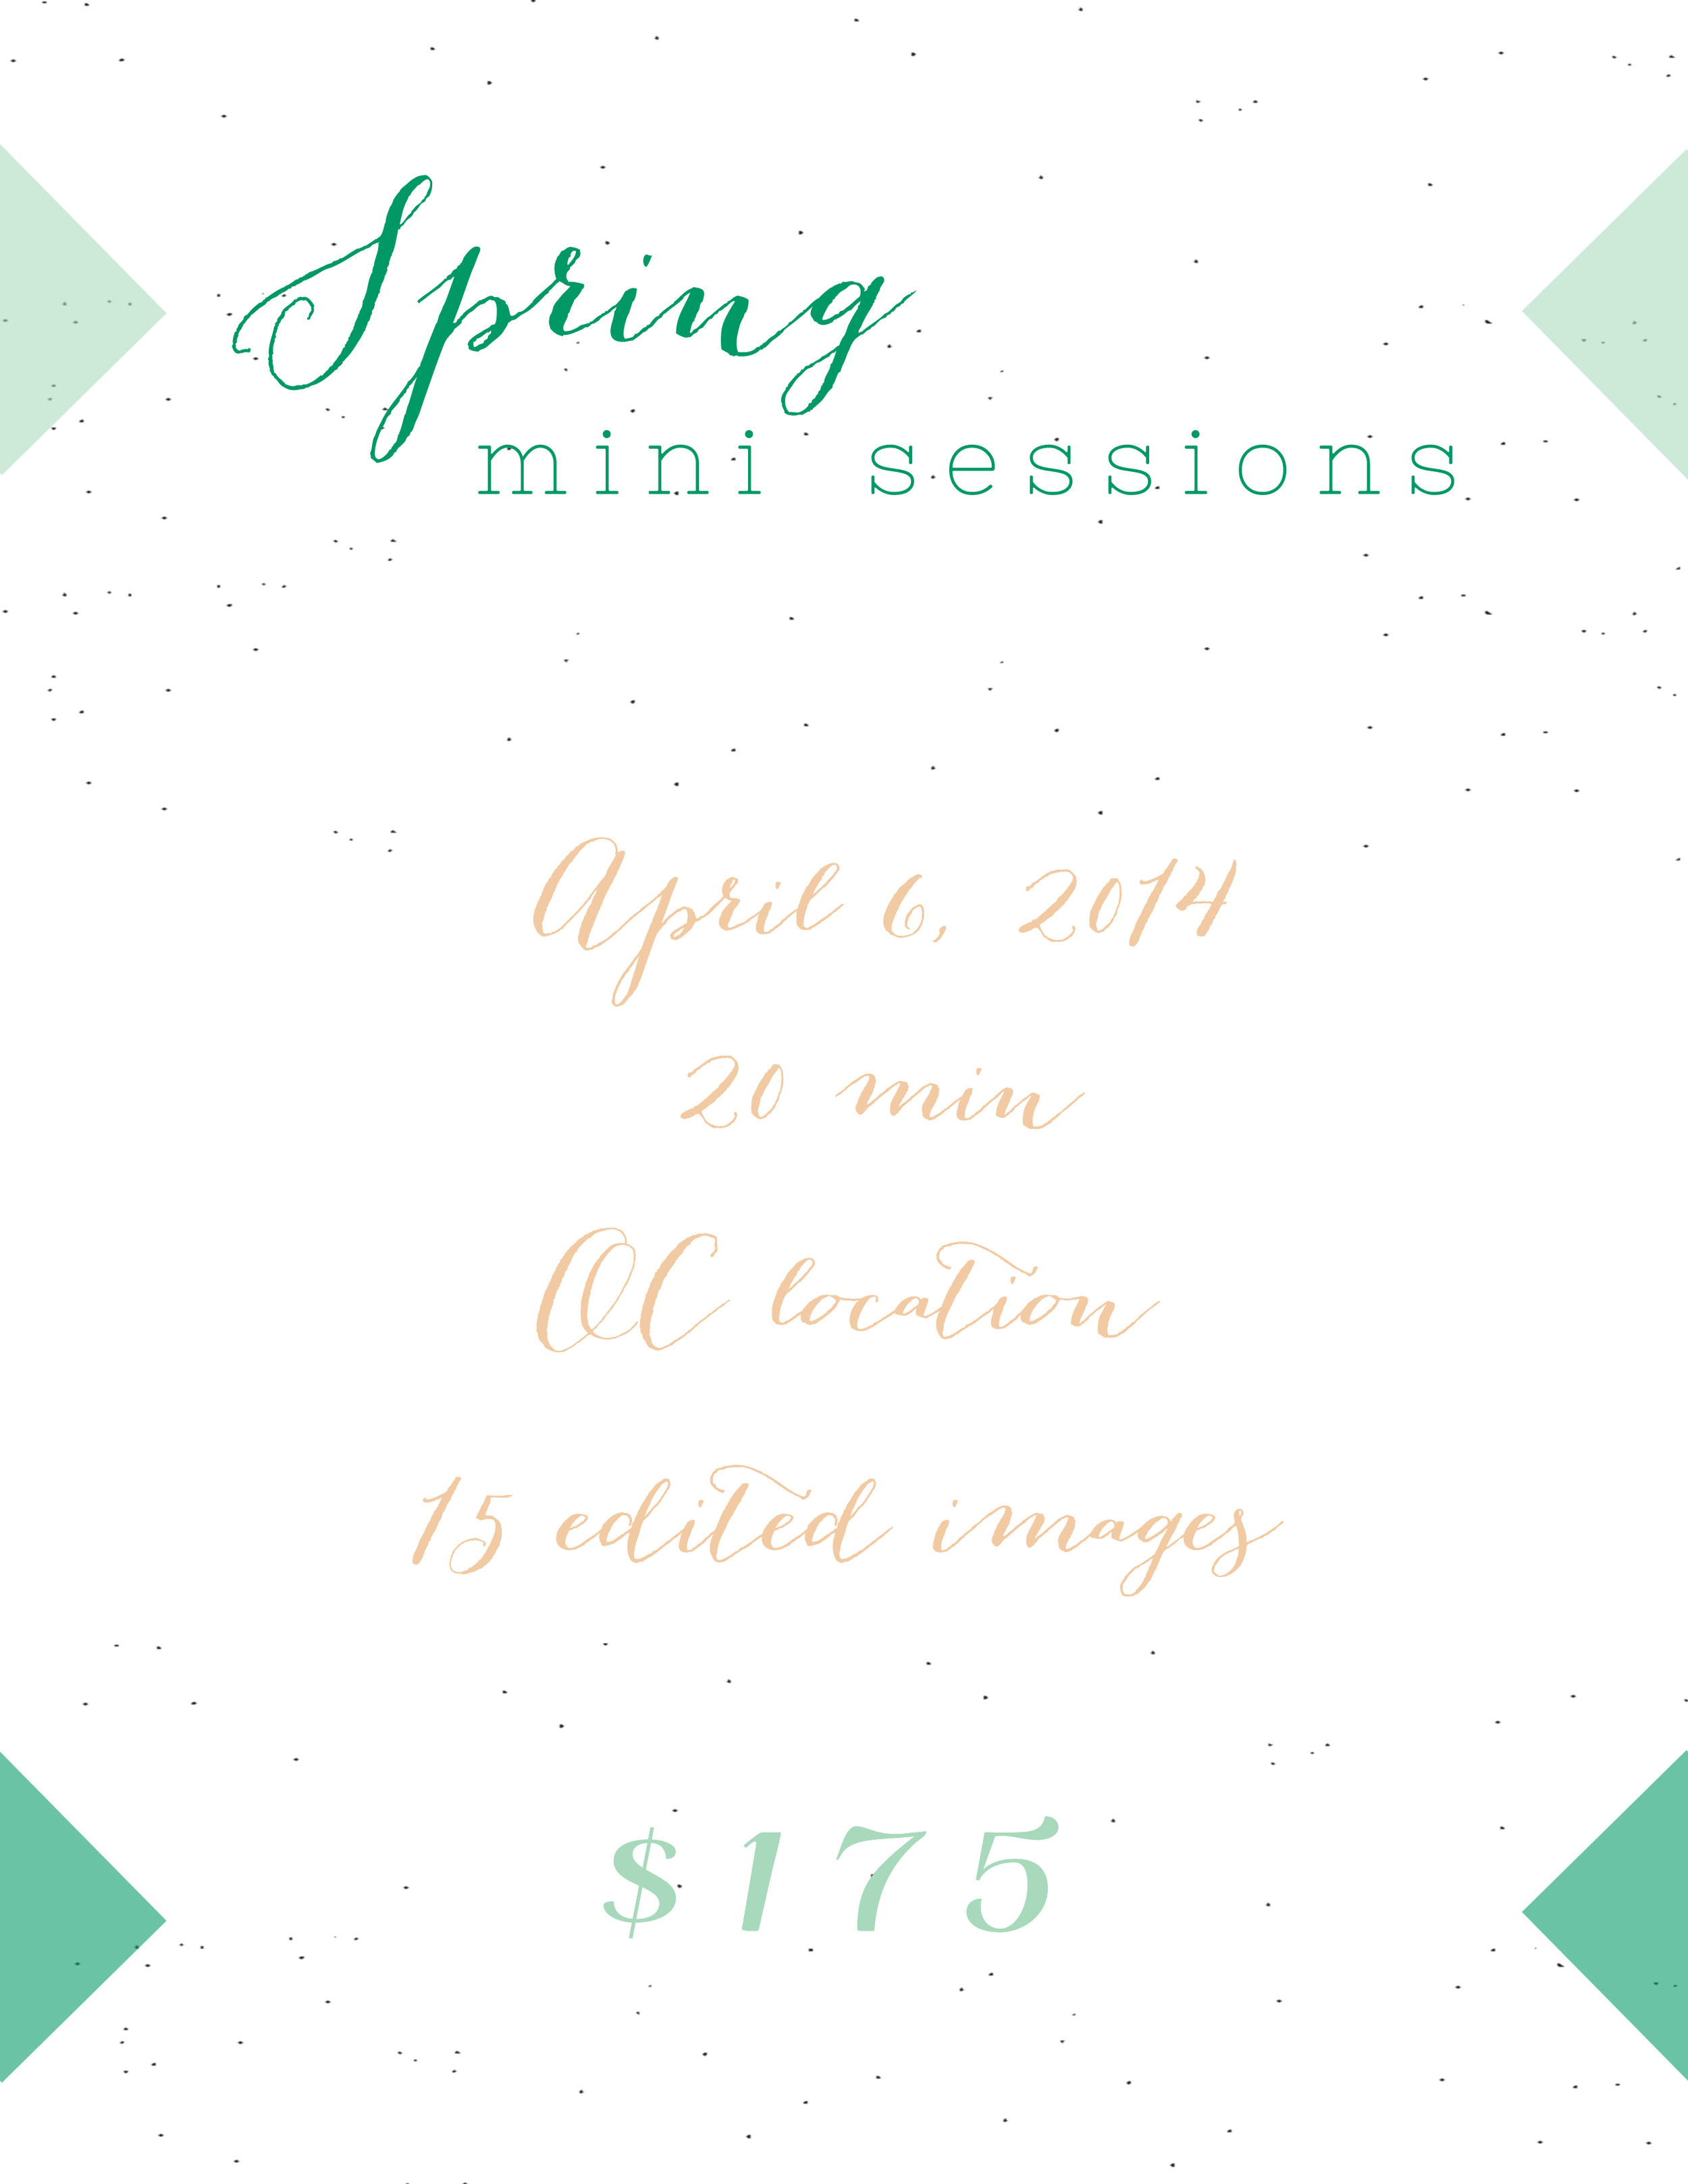 Jack and Lola Photography Spring Mini sessions 2014